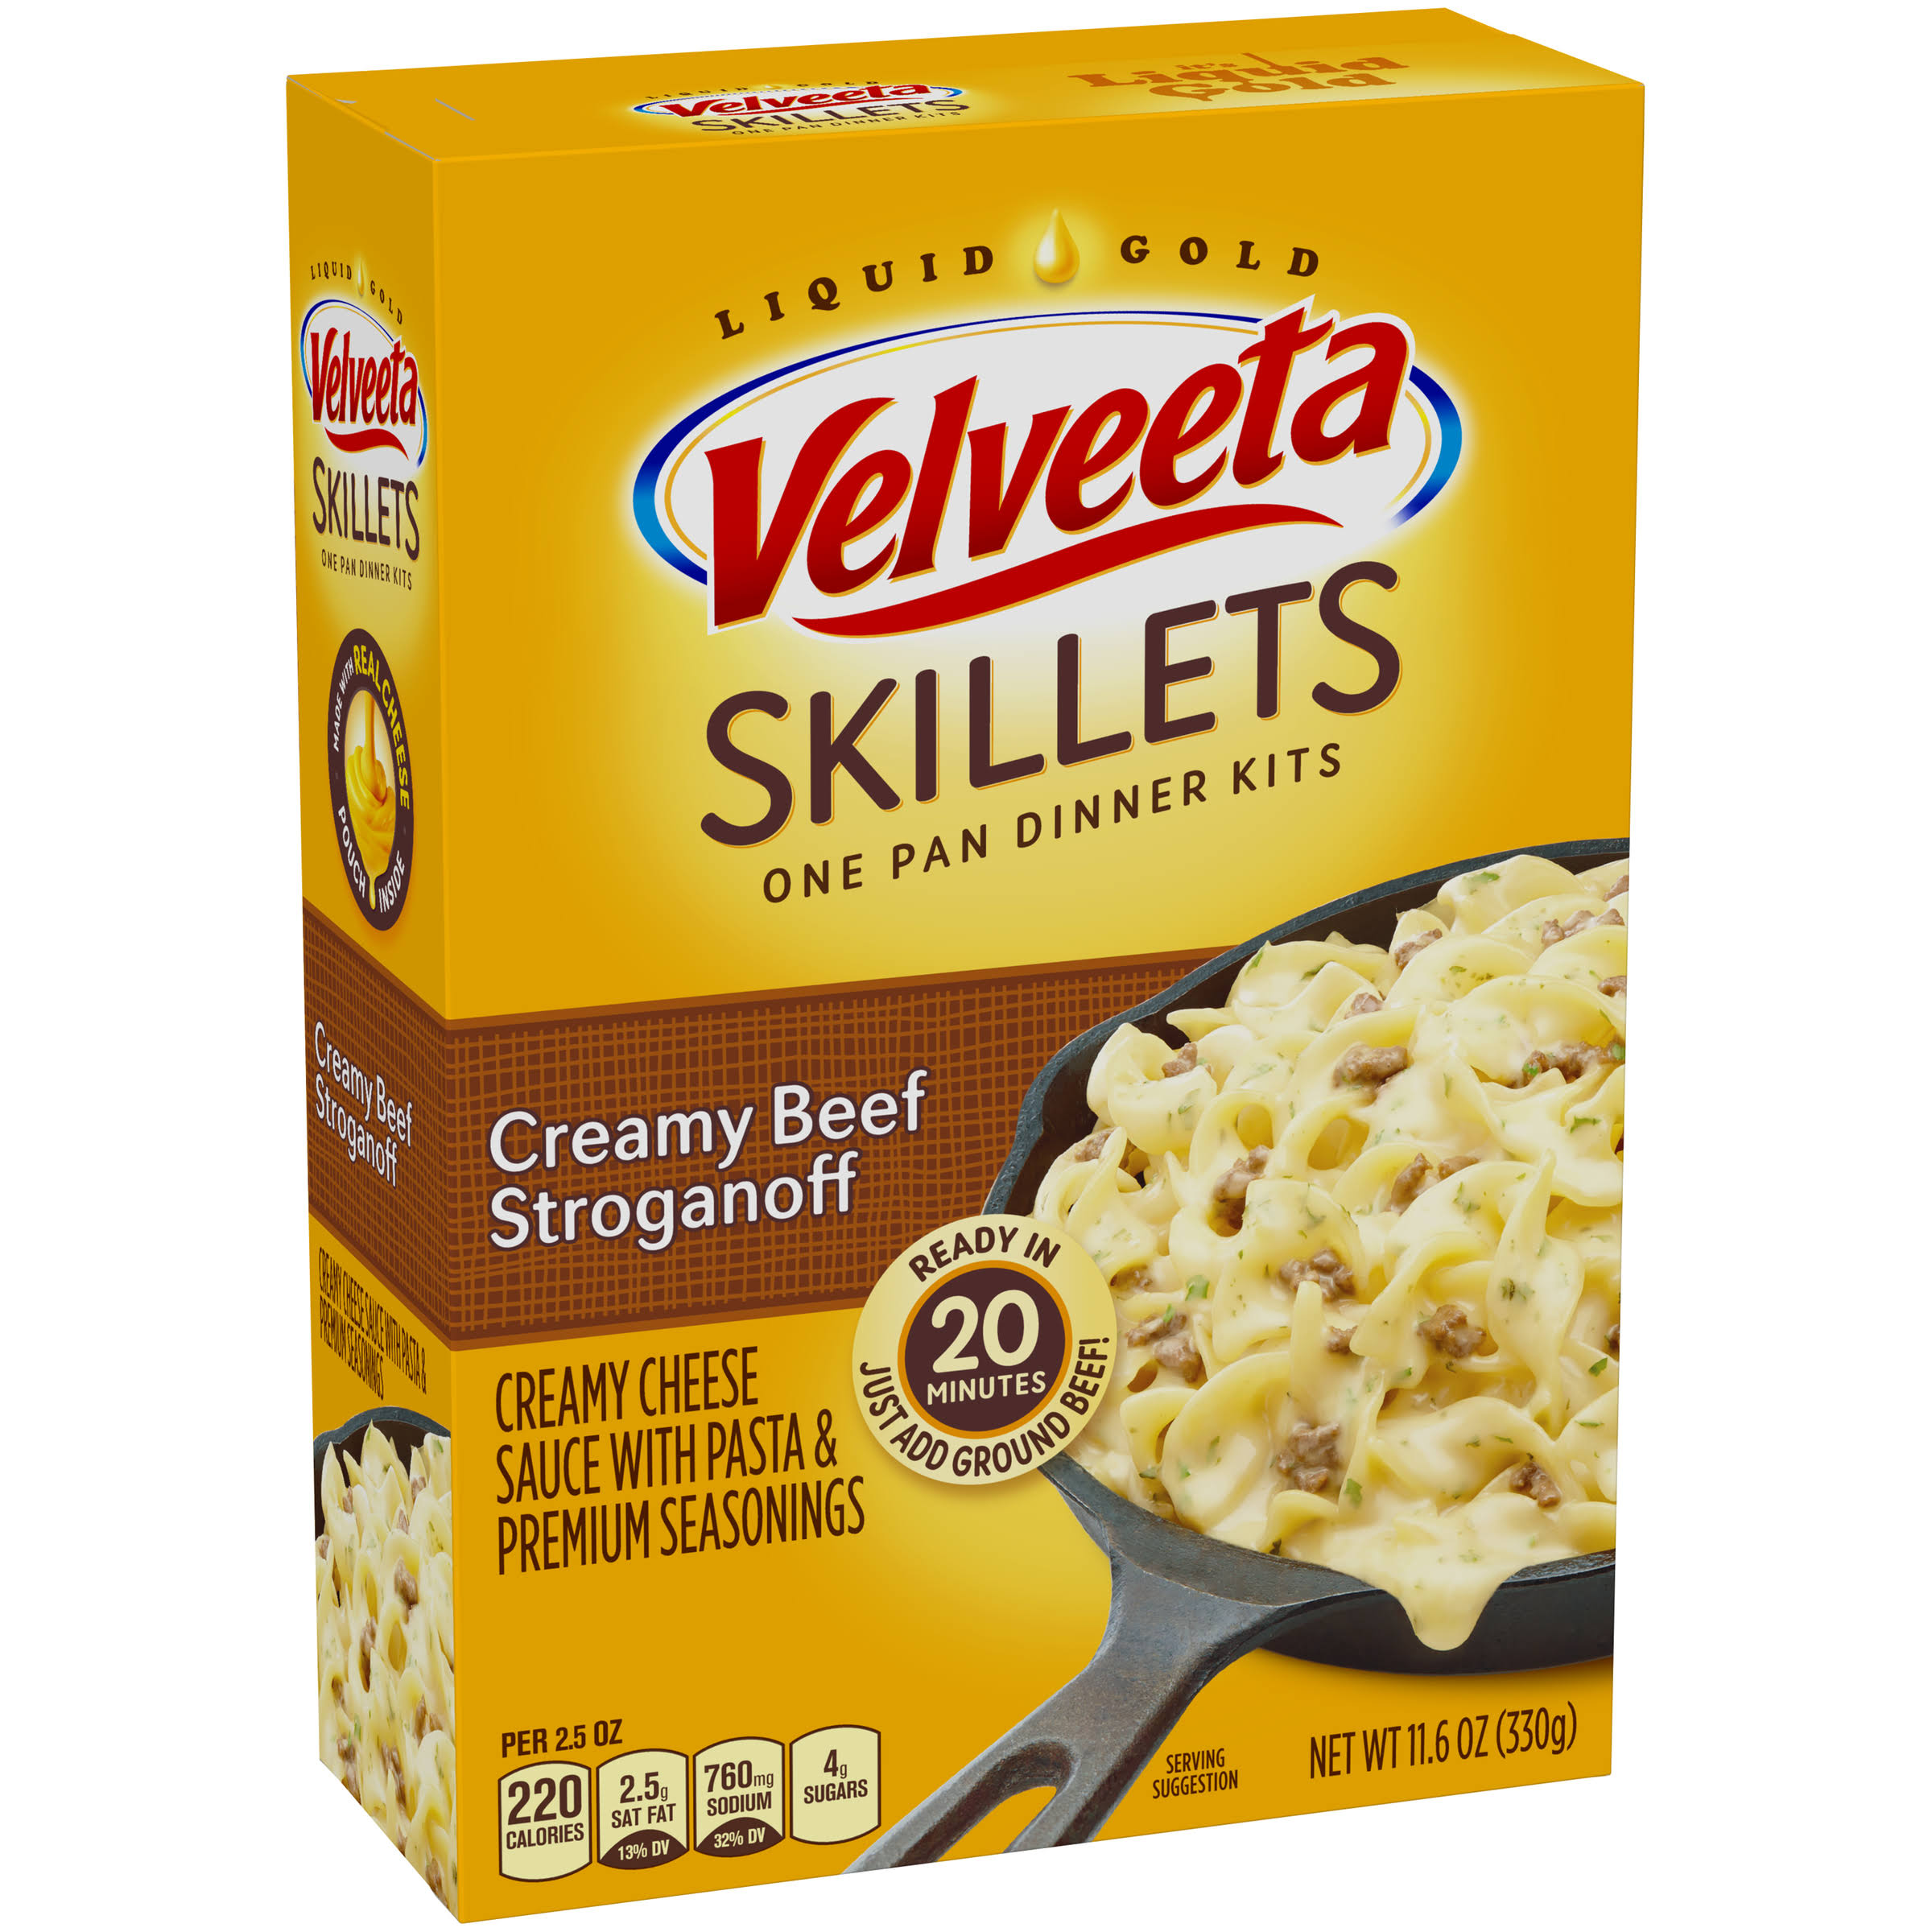 Kraft Velveeta Cheesy Skillets Dinner Kit - Creamy Beef Stroganoff, 11.6oz